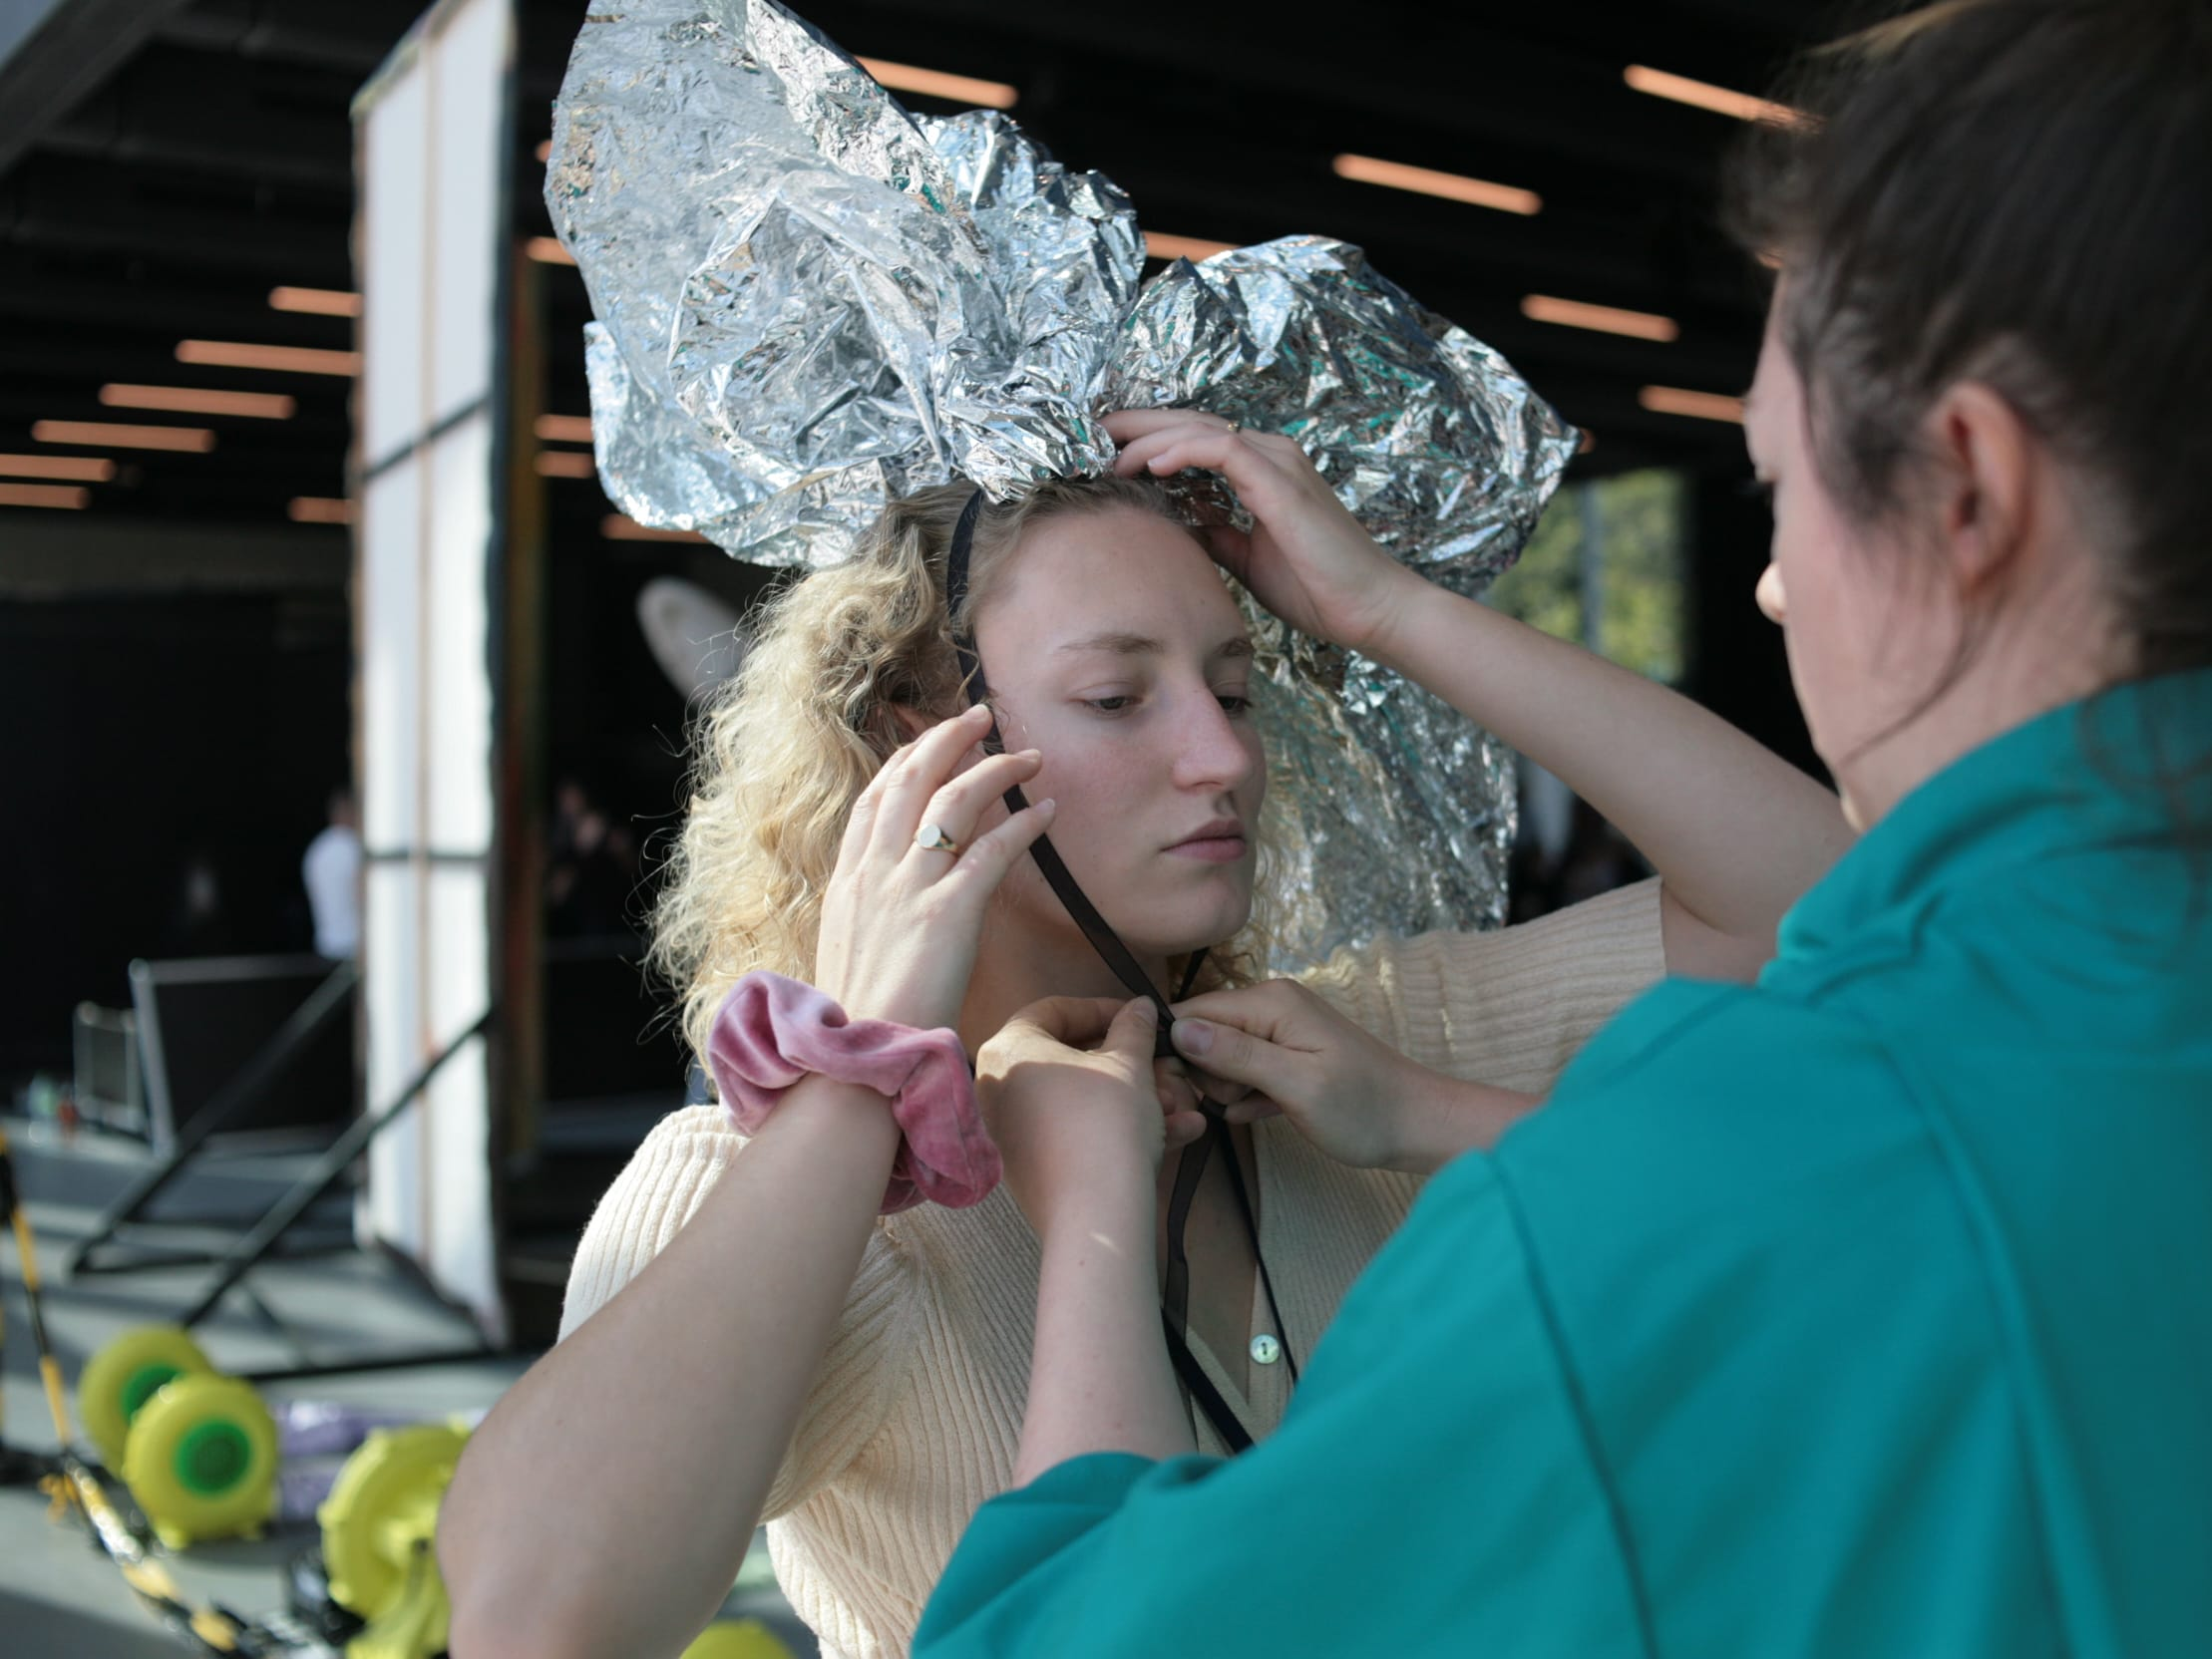 Student with tin foil hat getting ready for performance during the Bauhaus celebrations in Dessau, Germany.